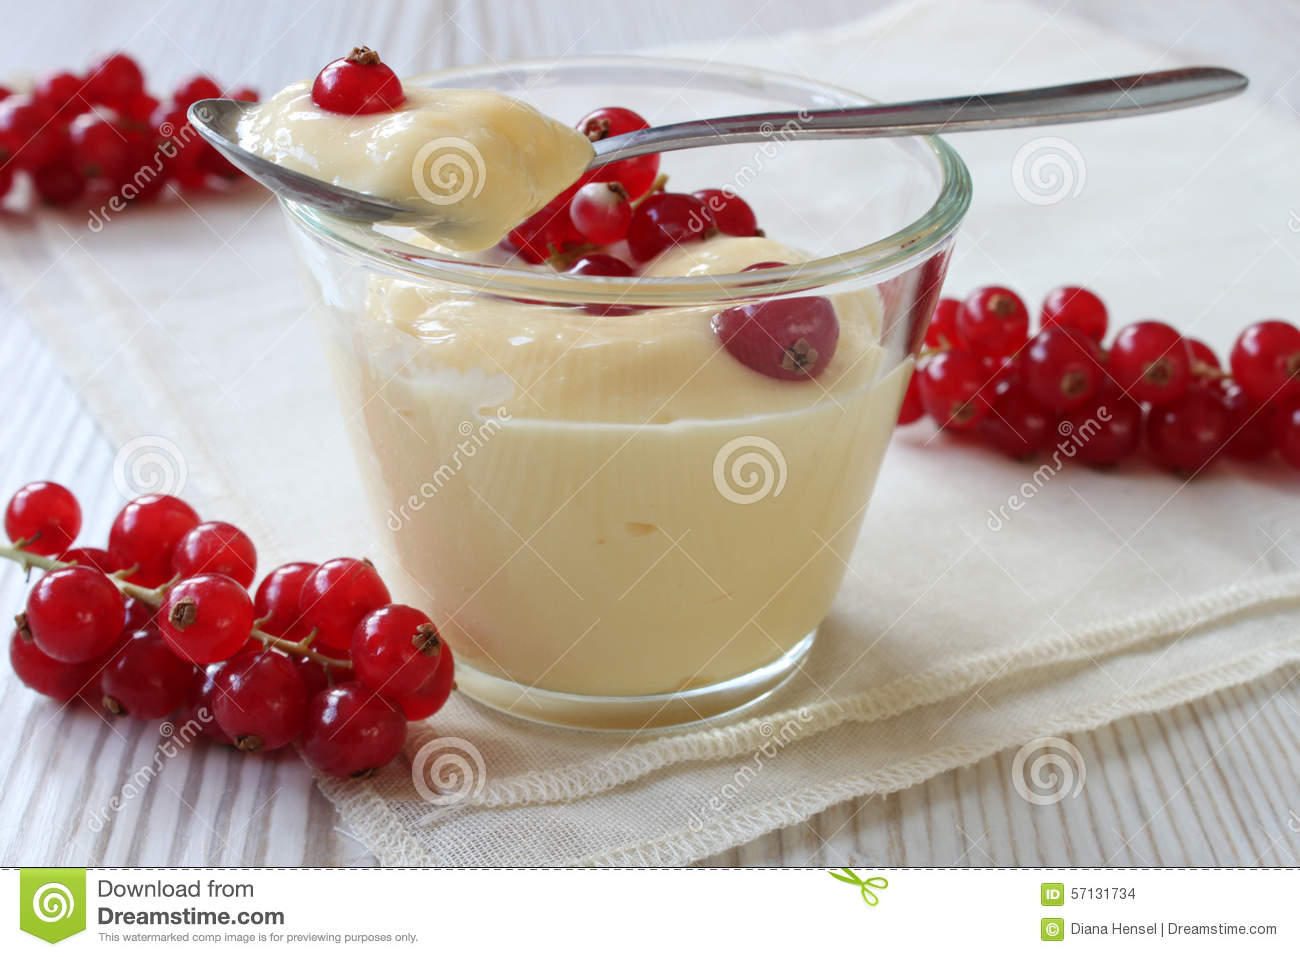 Vanilla Pudding With Redcurrants In A Glass Bowl With Spoon And